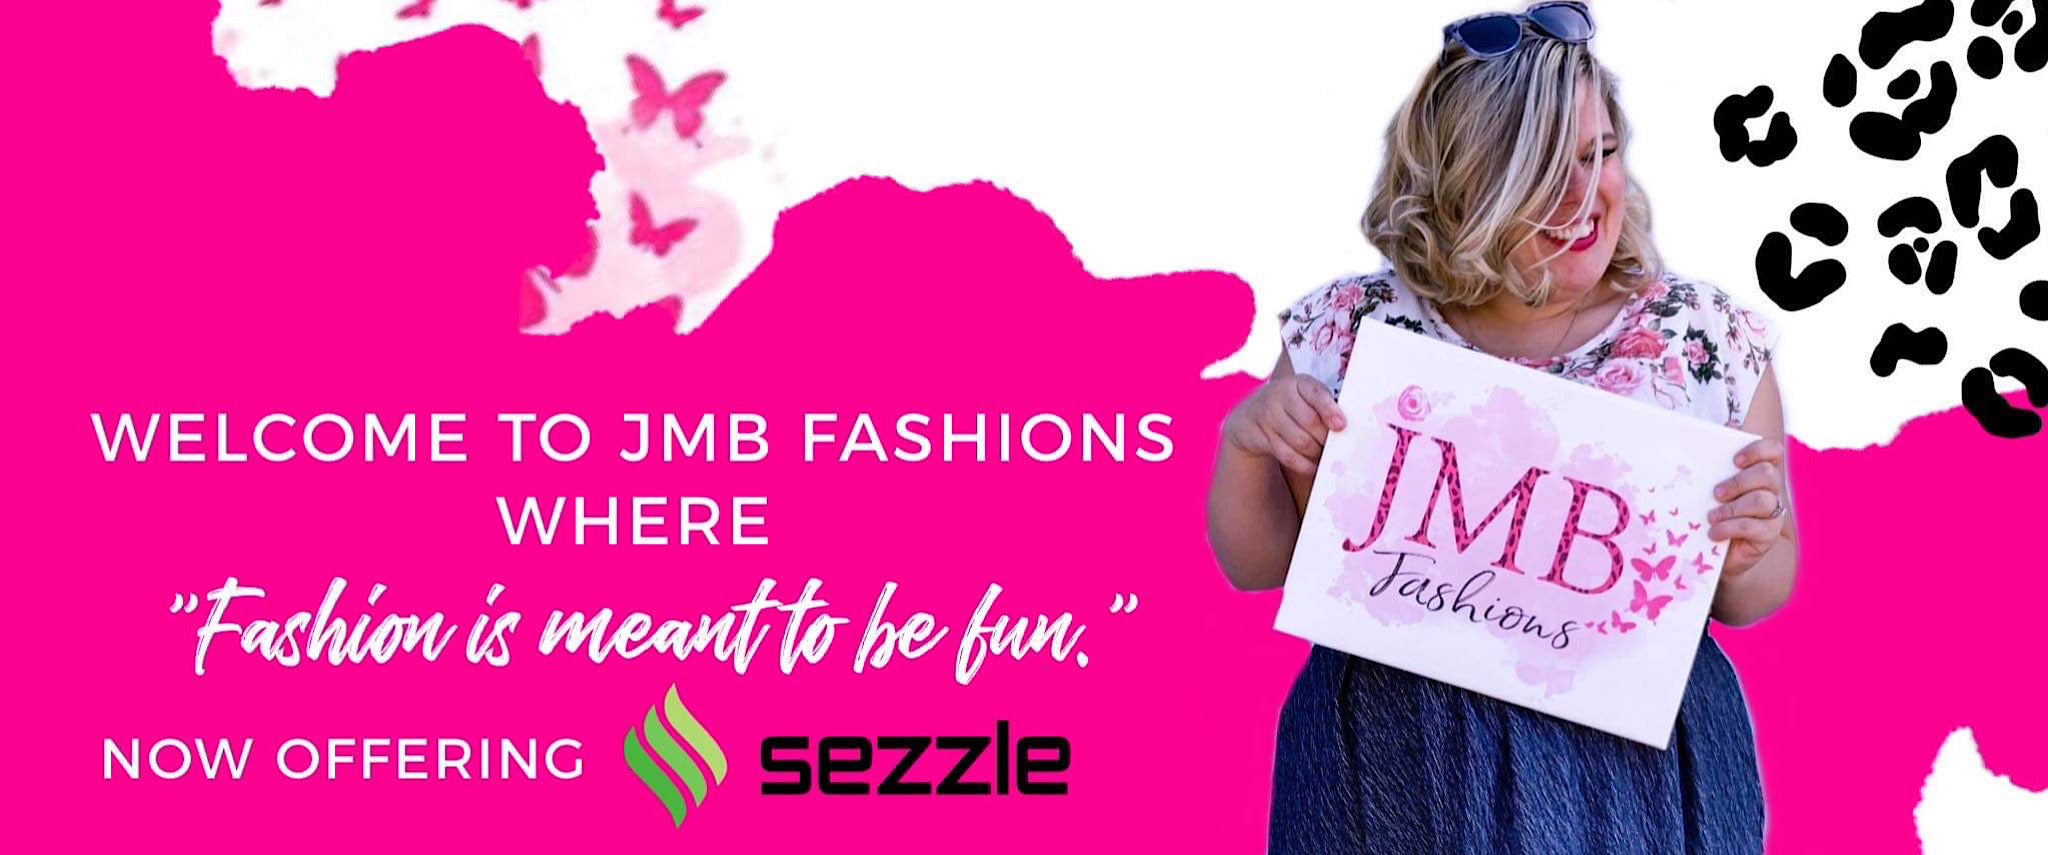 JMB Fashions where fashion is meant to be fun